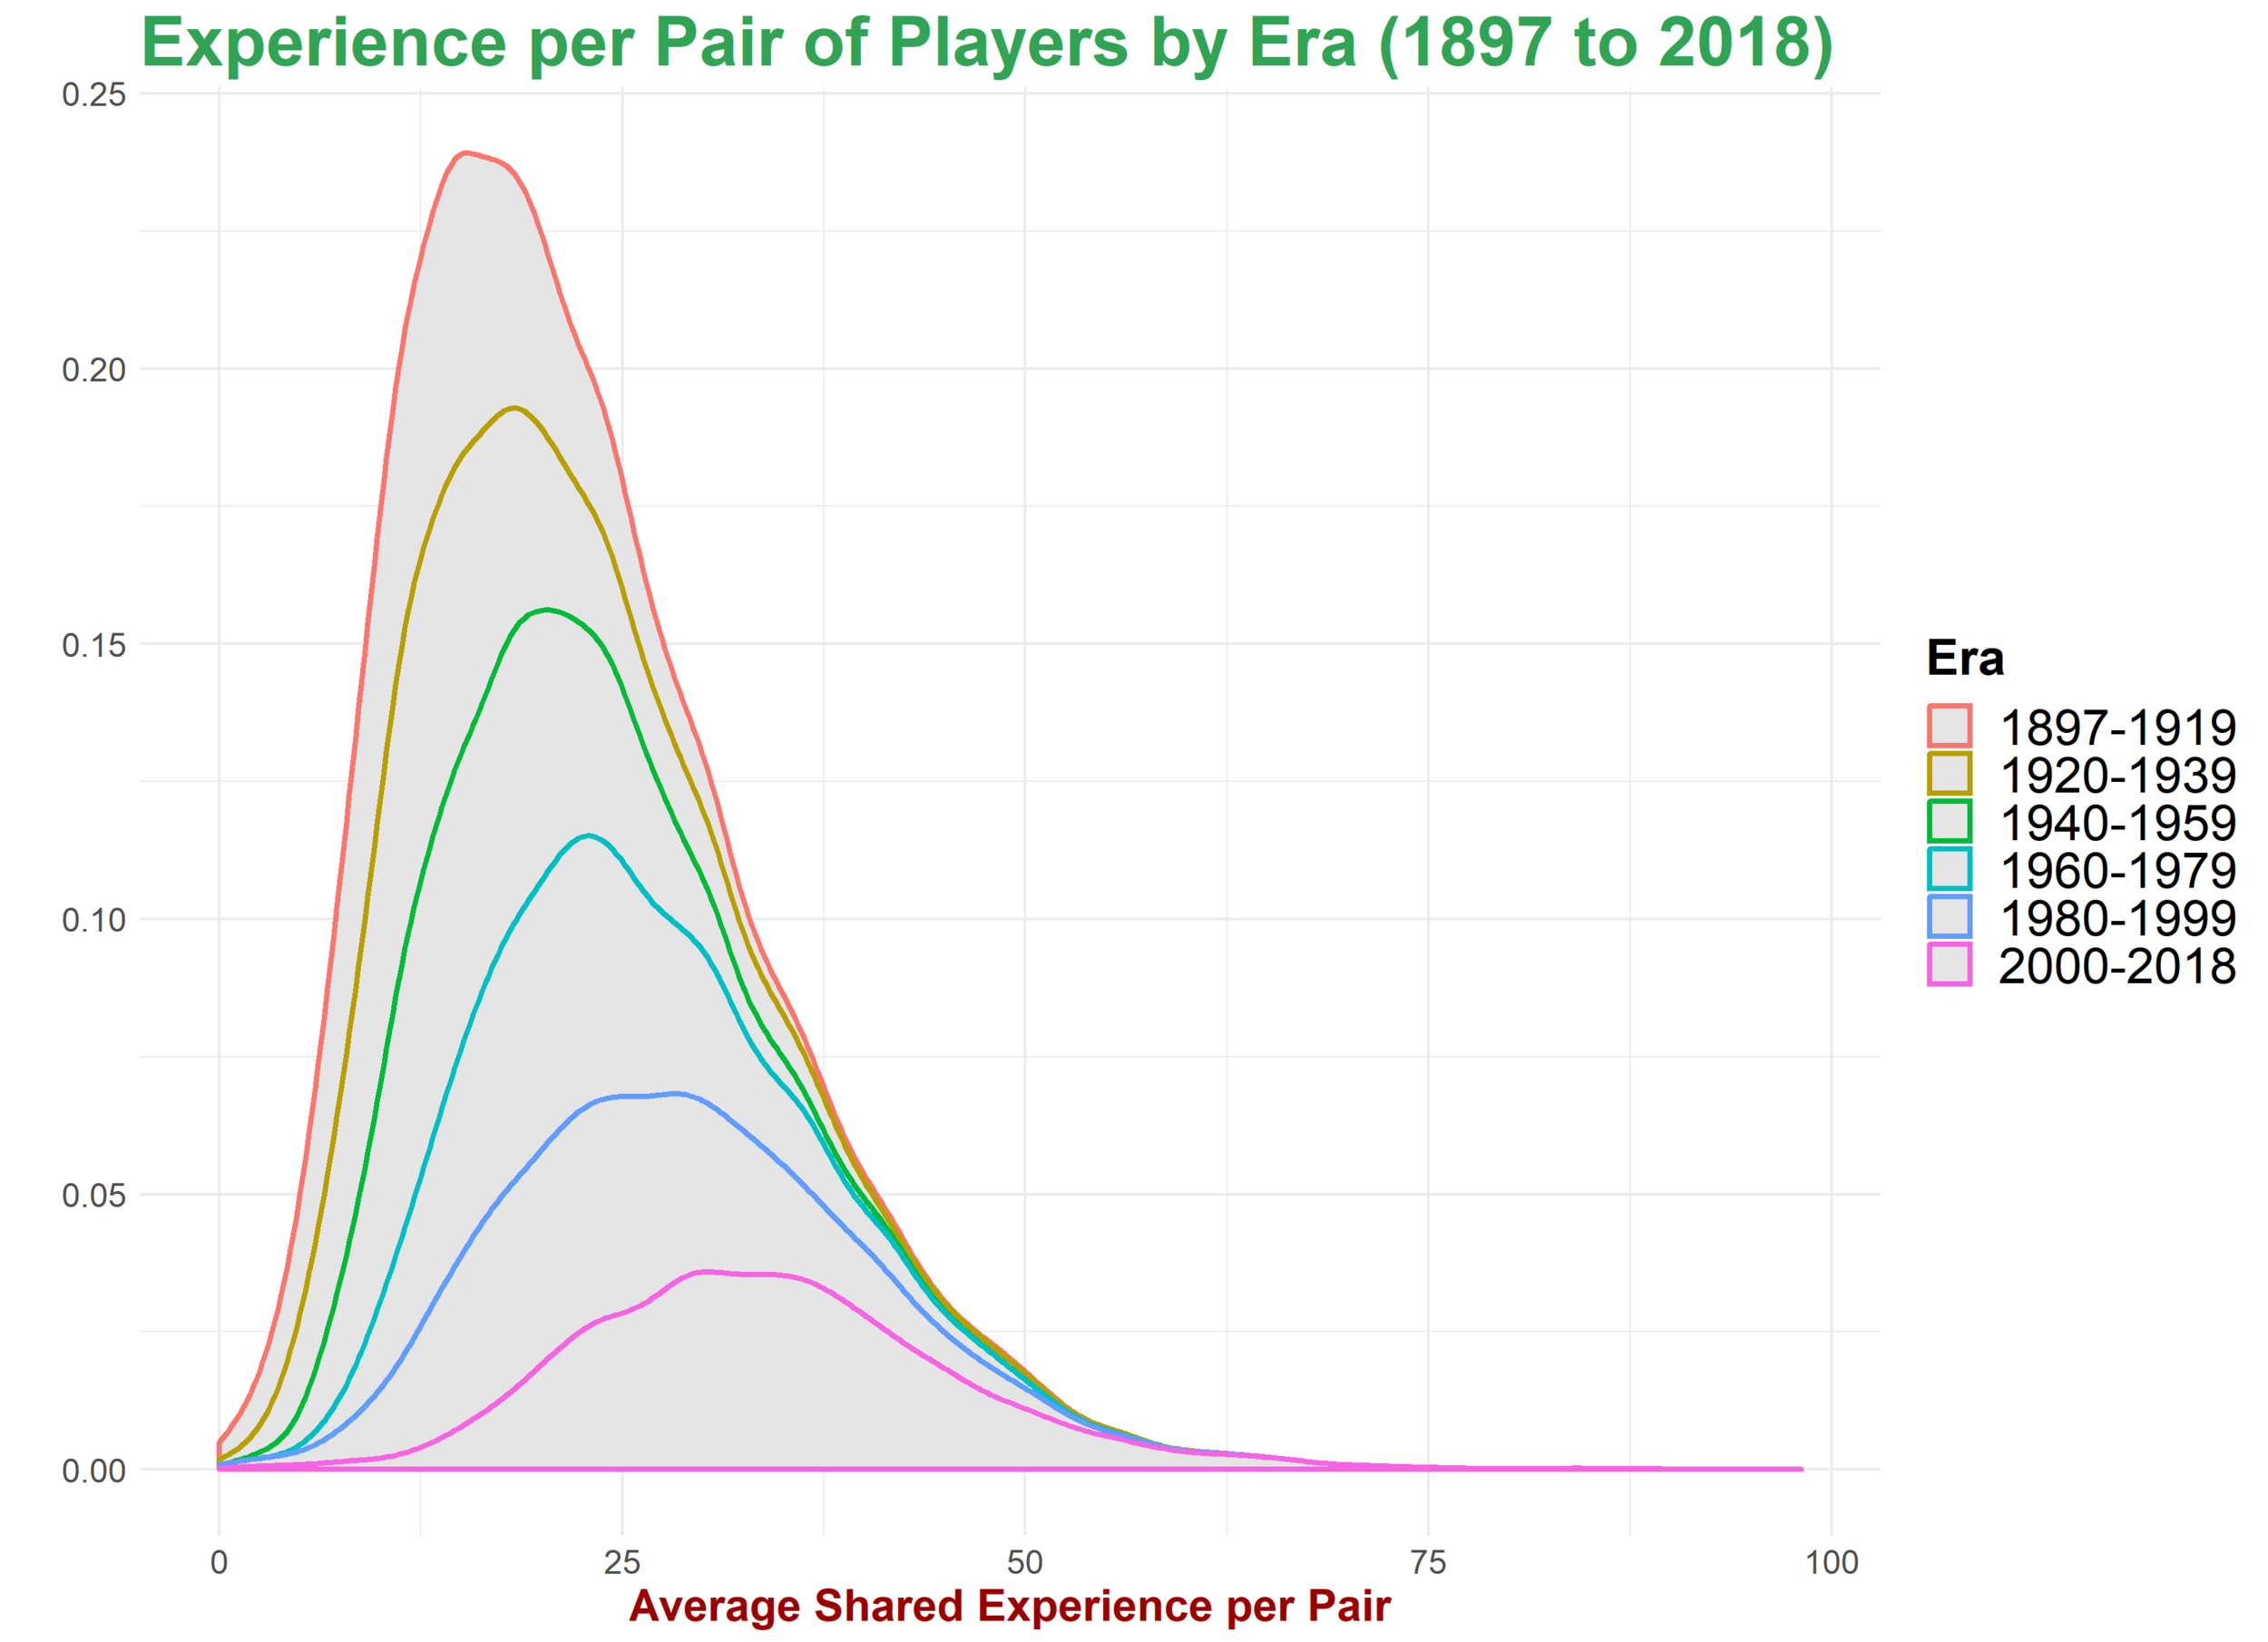 Shared Experience per Pair by Era.png